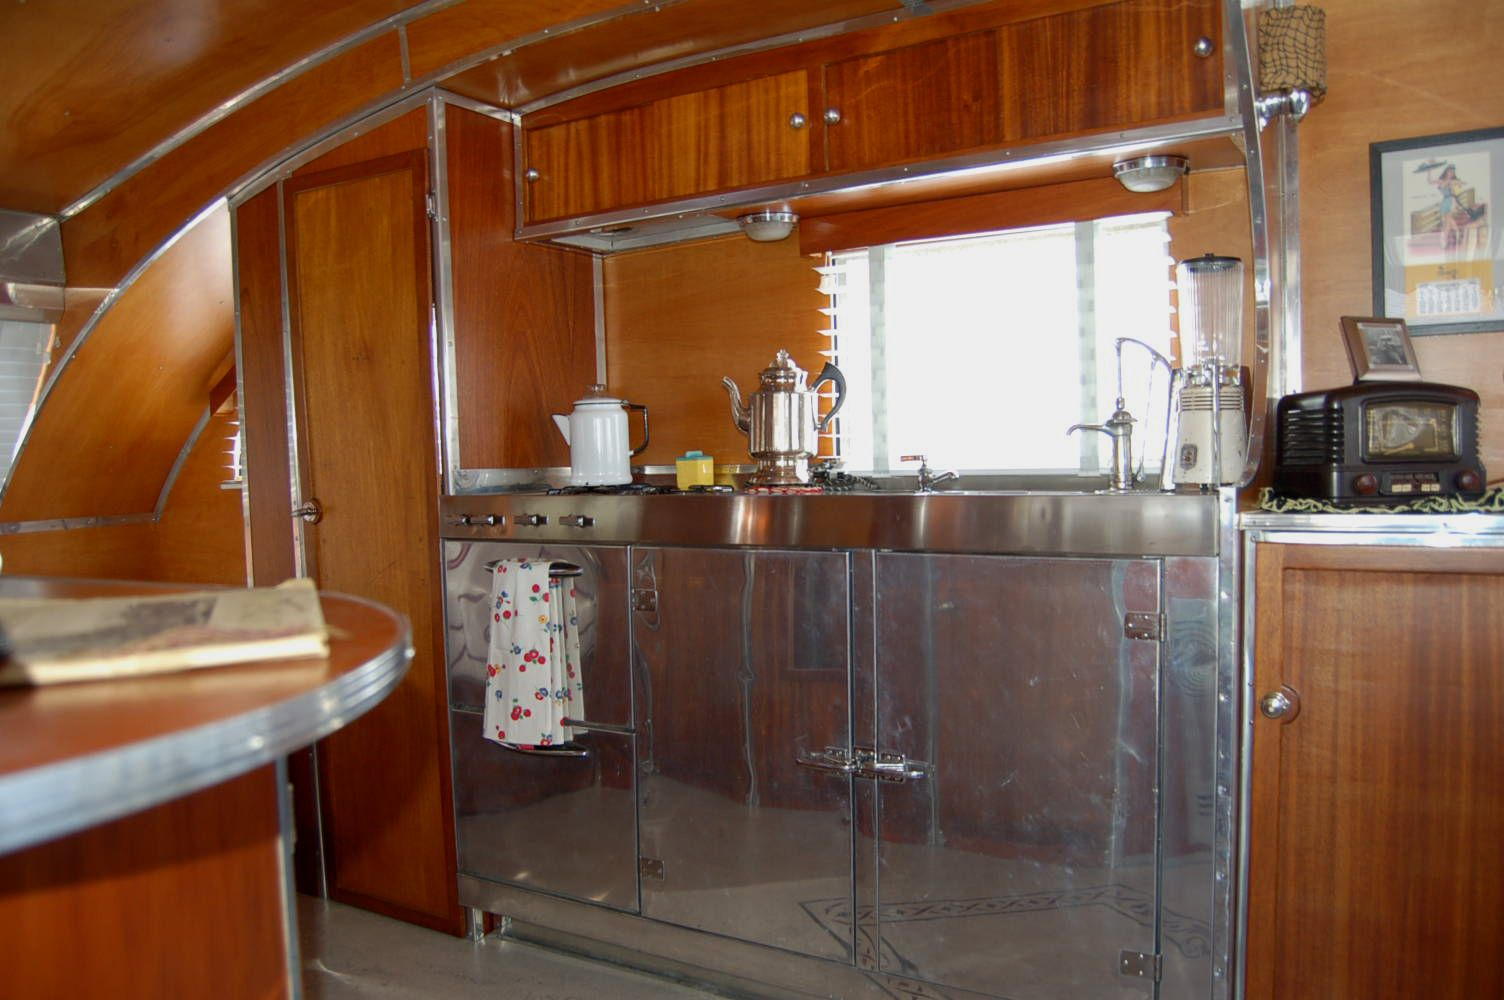 Exceptional Aero Flite Trailer | ... Steel Kitchen Cabinets And Countertop In A  Restored Aero